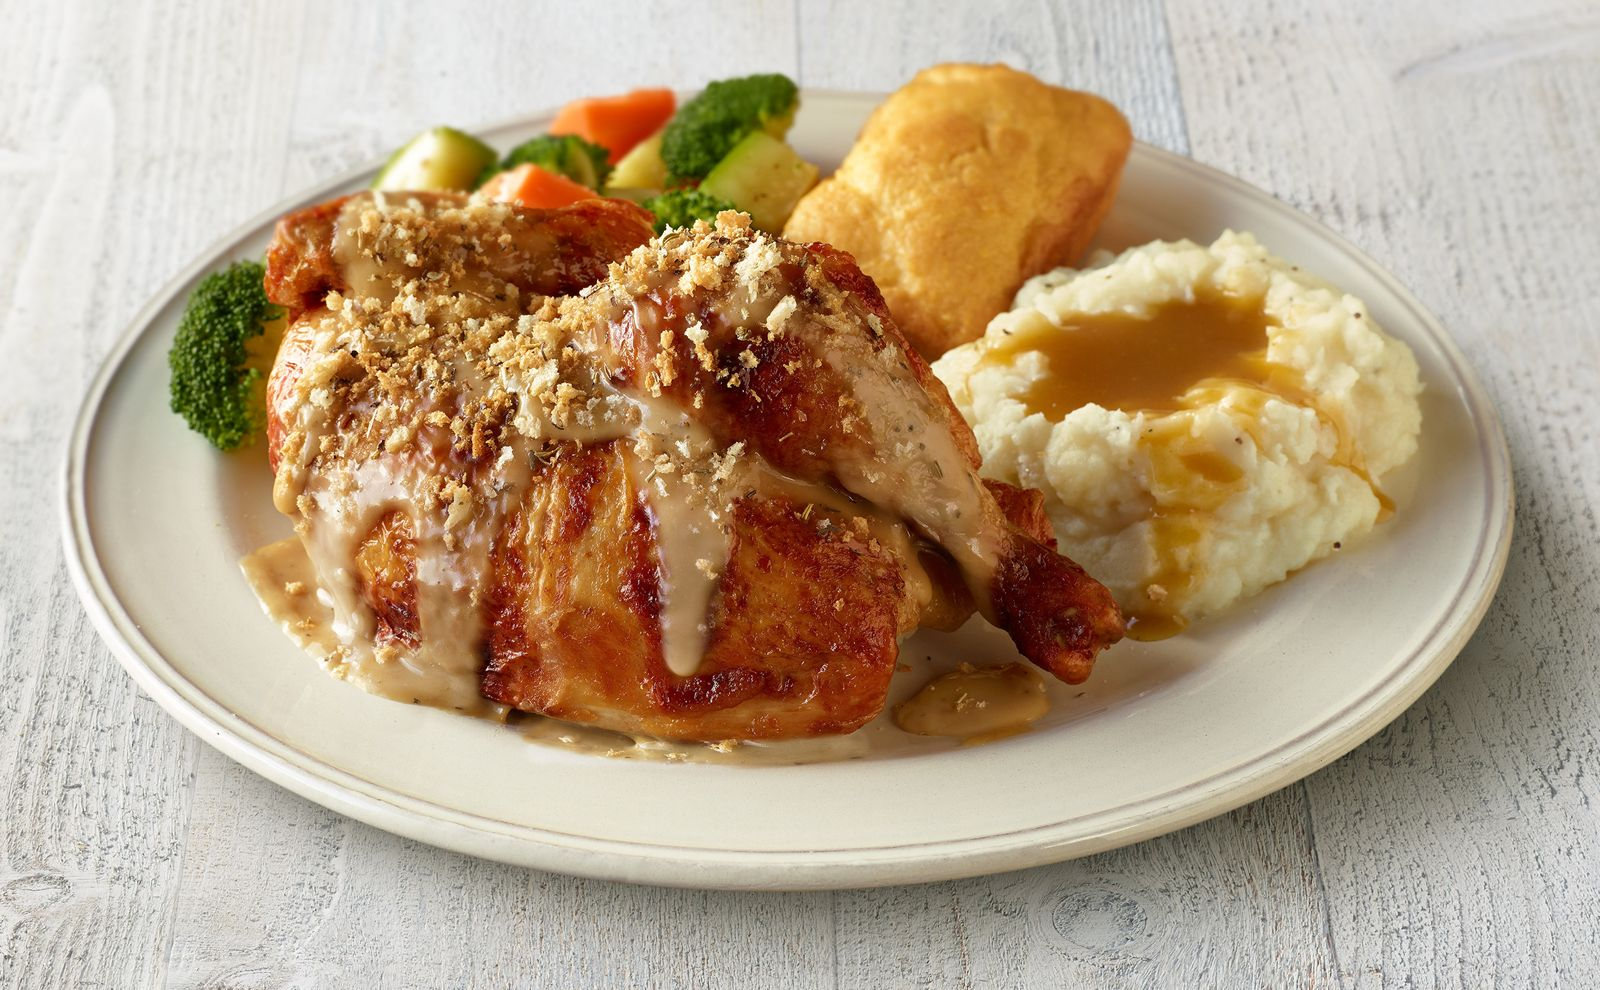 Boston Market Roasted Garlic & Herb Rotisserie Chicken